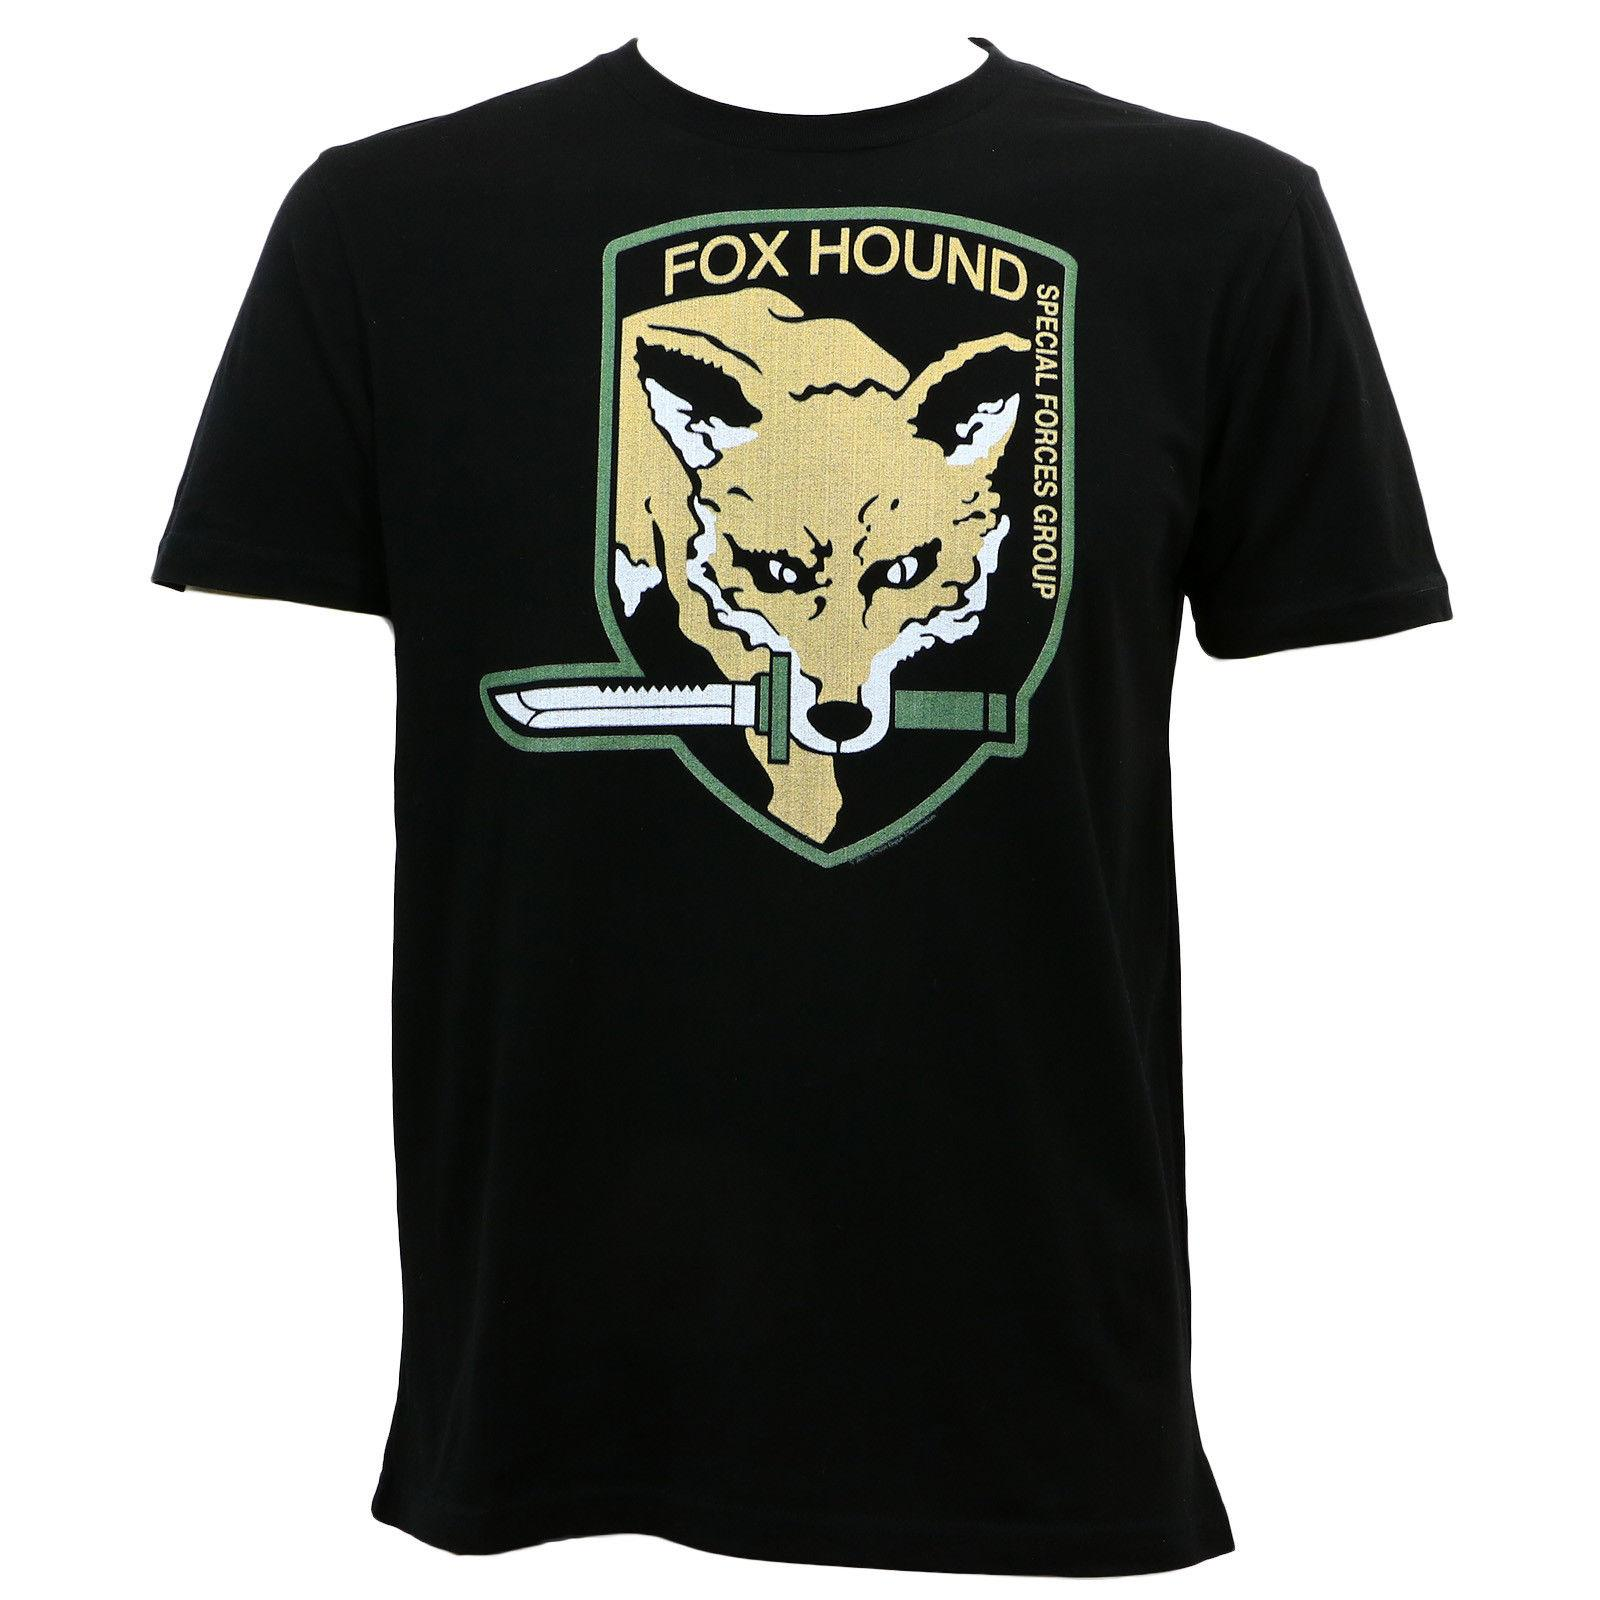 Authentic METAL GEAR RISING Fox Hound Special Forces T-Shirt S M L XL XXL NEW Funny free shipping Unisex Casual Tshirt top